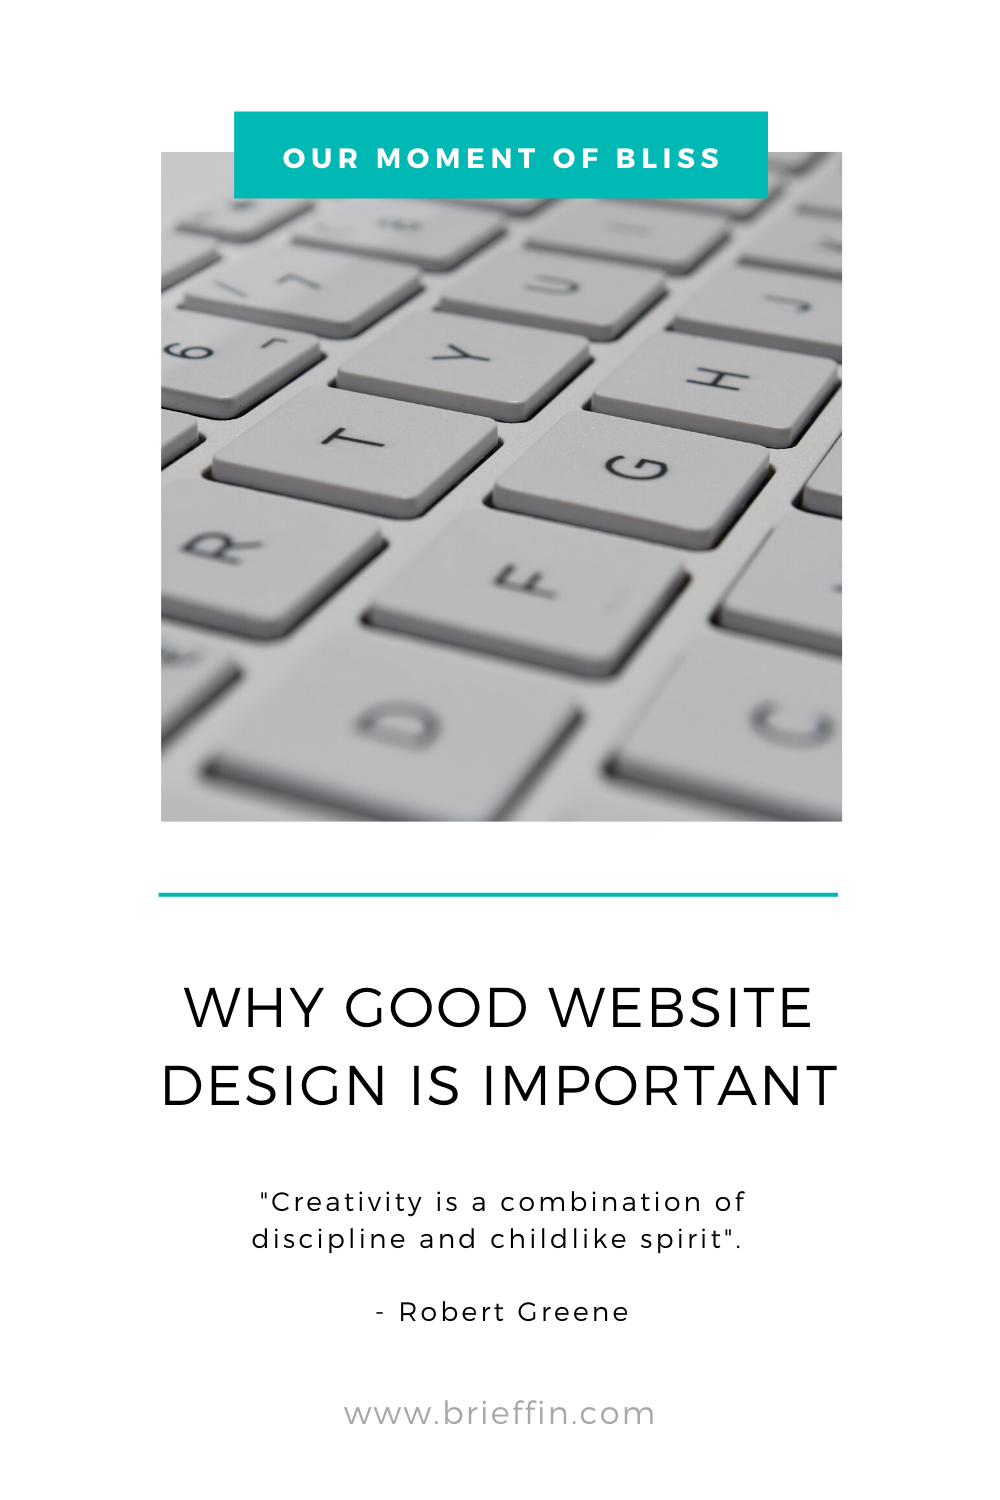 Long Gone Are The Days Of The Old Internet The Days When Having A Website At All Was An Achievement Rather Than An Expectation The Days When Websites Were En 2020